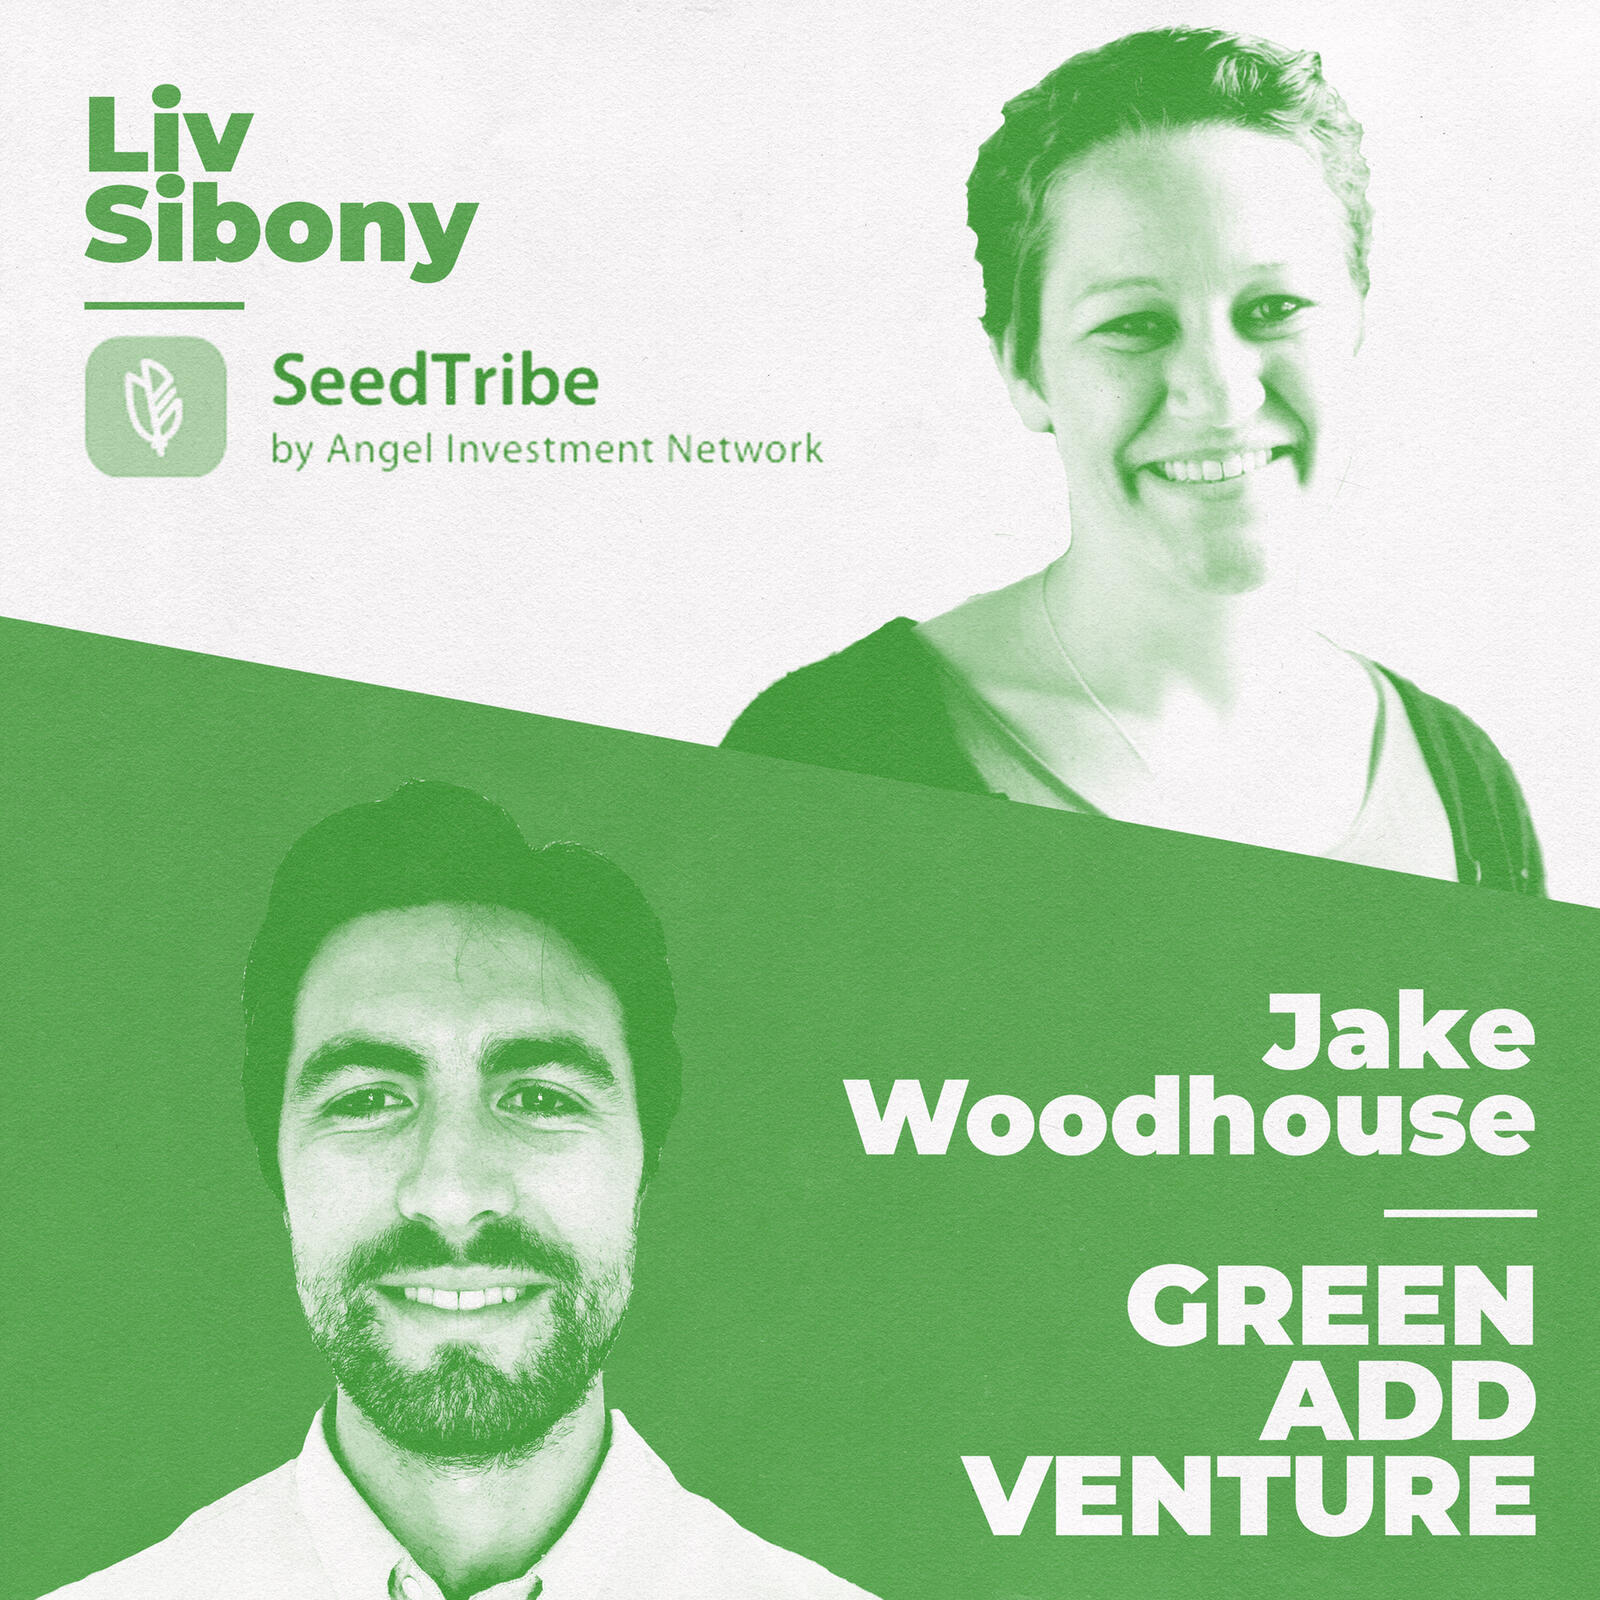 4: Liv Sibony - SeedTribe - Connecting Investors With Impactful Startups